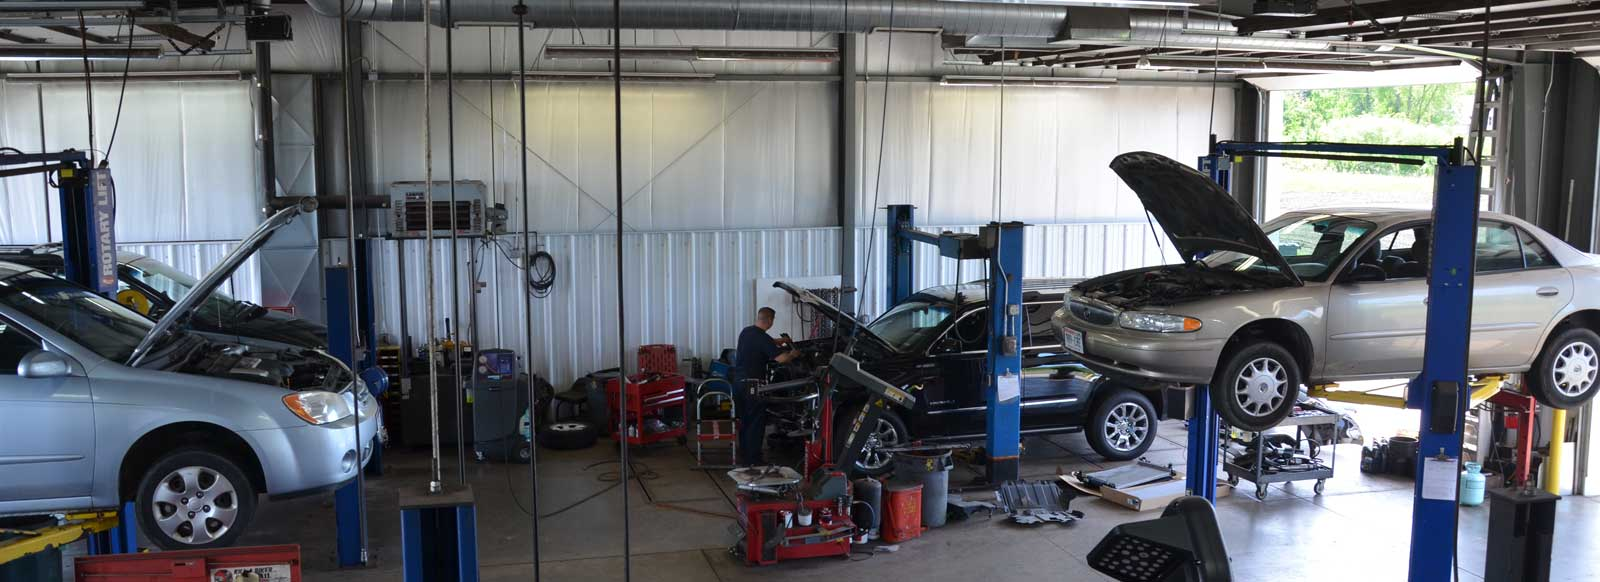 Repair Shop Your Trusted Auto Repair Shop In Hortonville Wi Afs Service